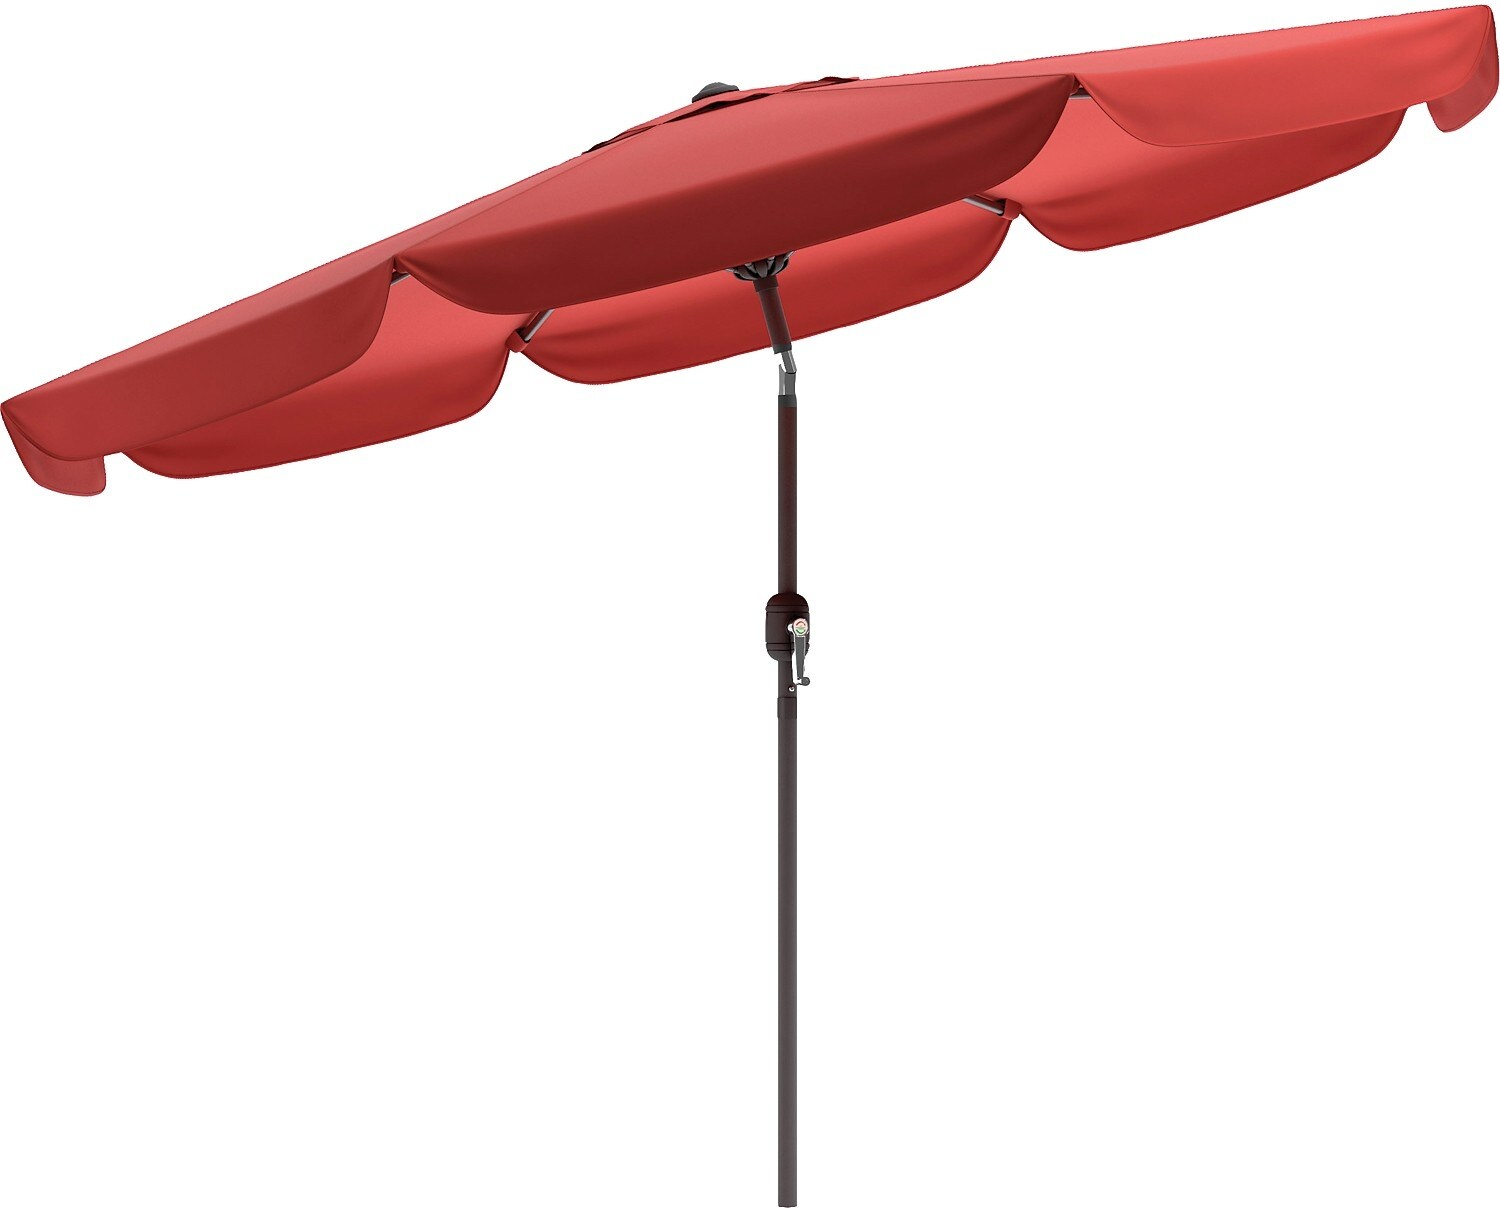 Tilting-Top Patio Umbrella – Wine Red